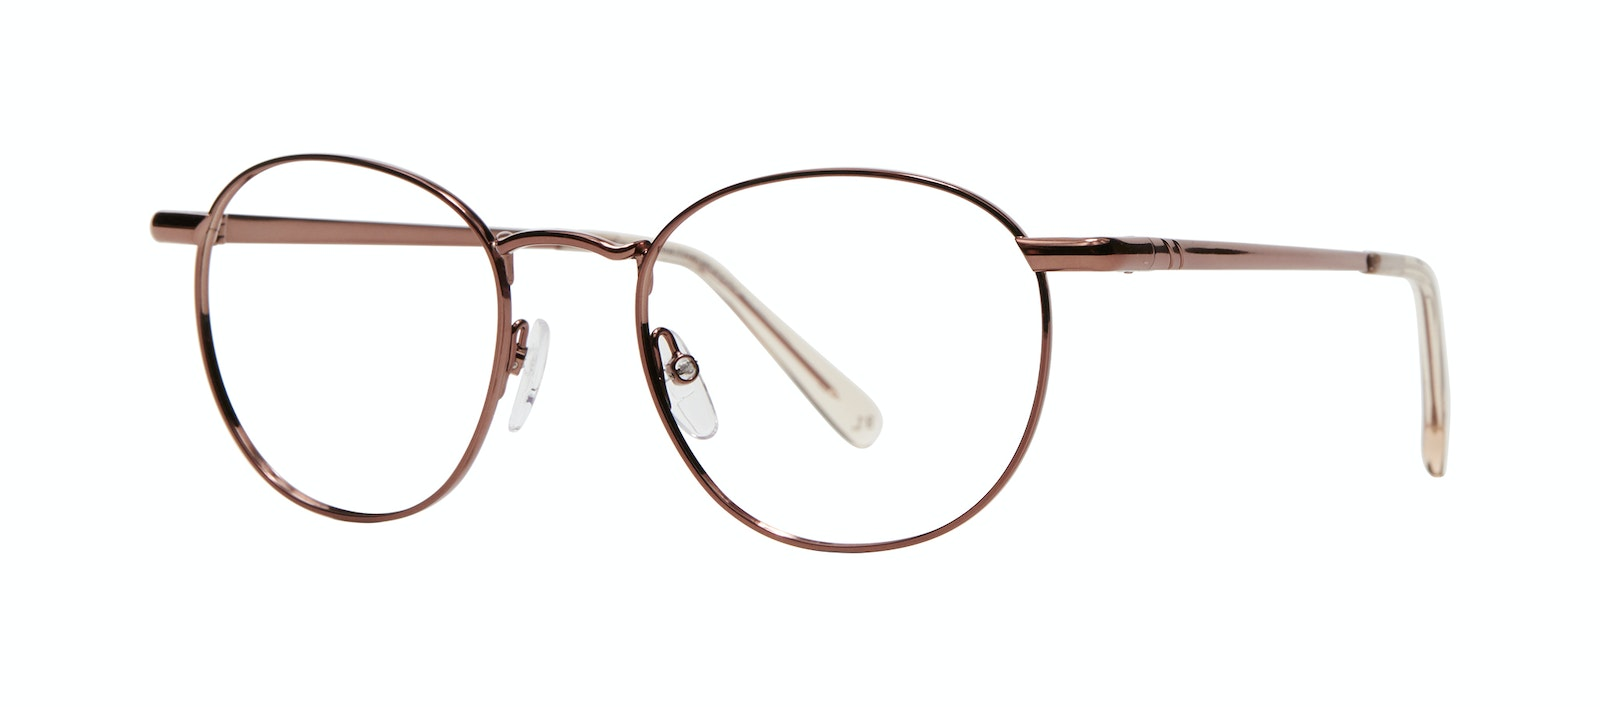 Affordable Fashion Glasses Round Eyeglasses Women Divine L Copper Tilt